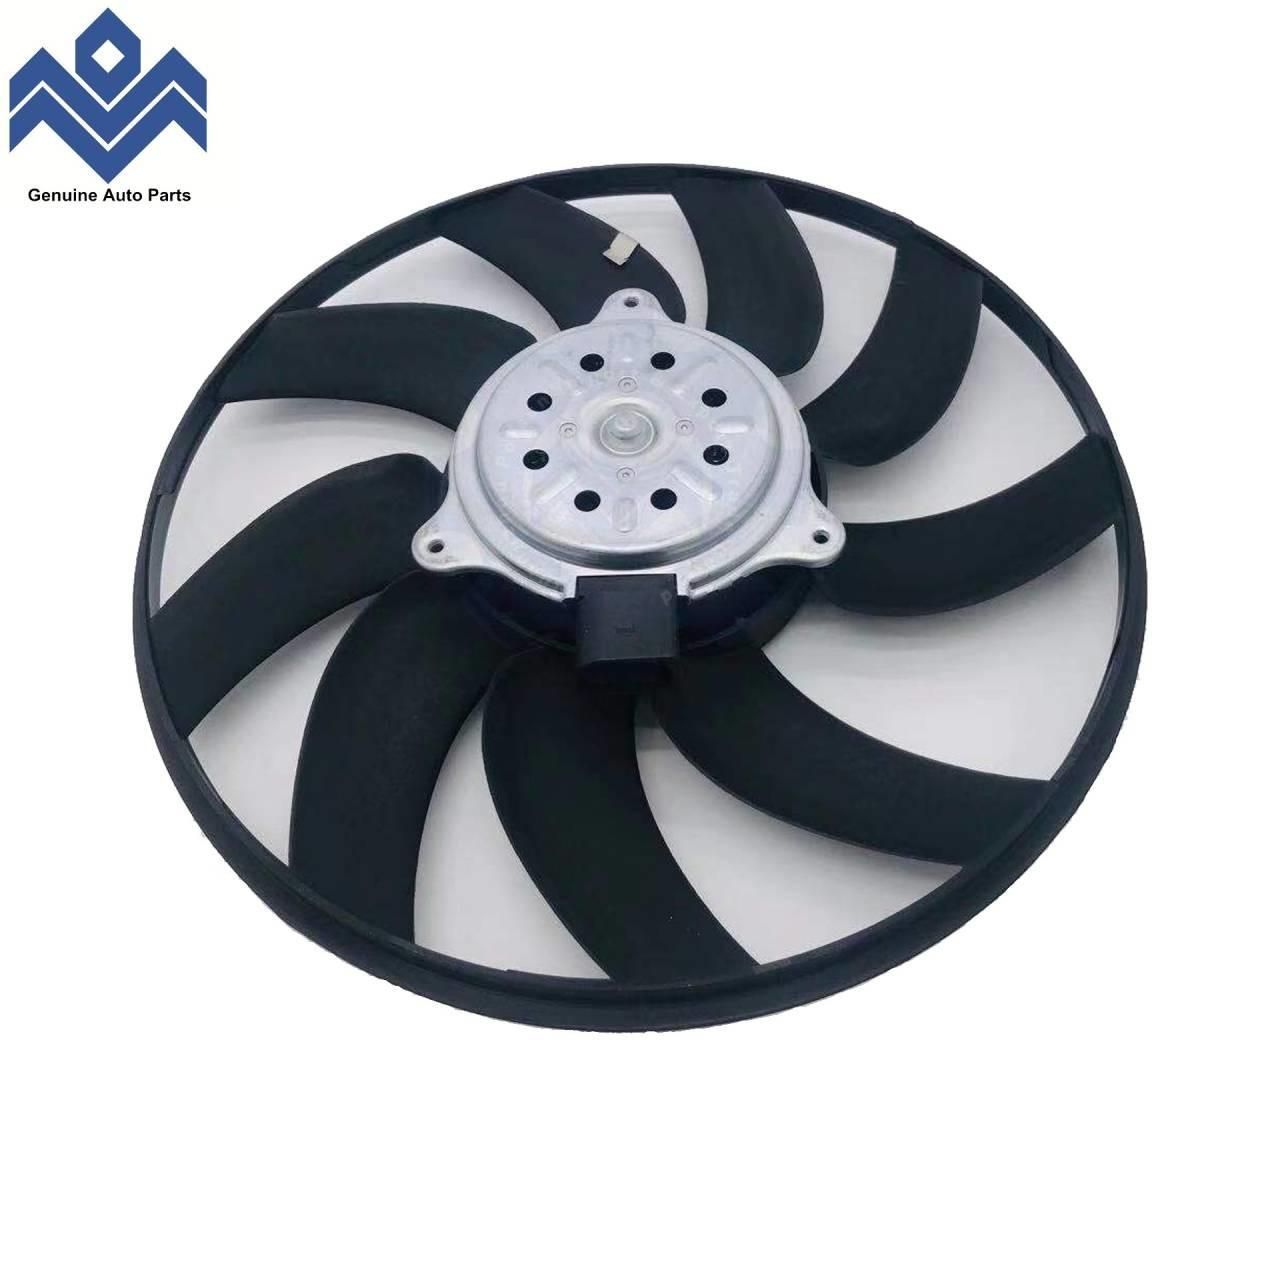 China 12V Engine Cooling Parts Radiator Cooling Fan Assembly Fits For Audi A4 A5 8K0 959 455 G Q on sale